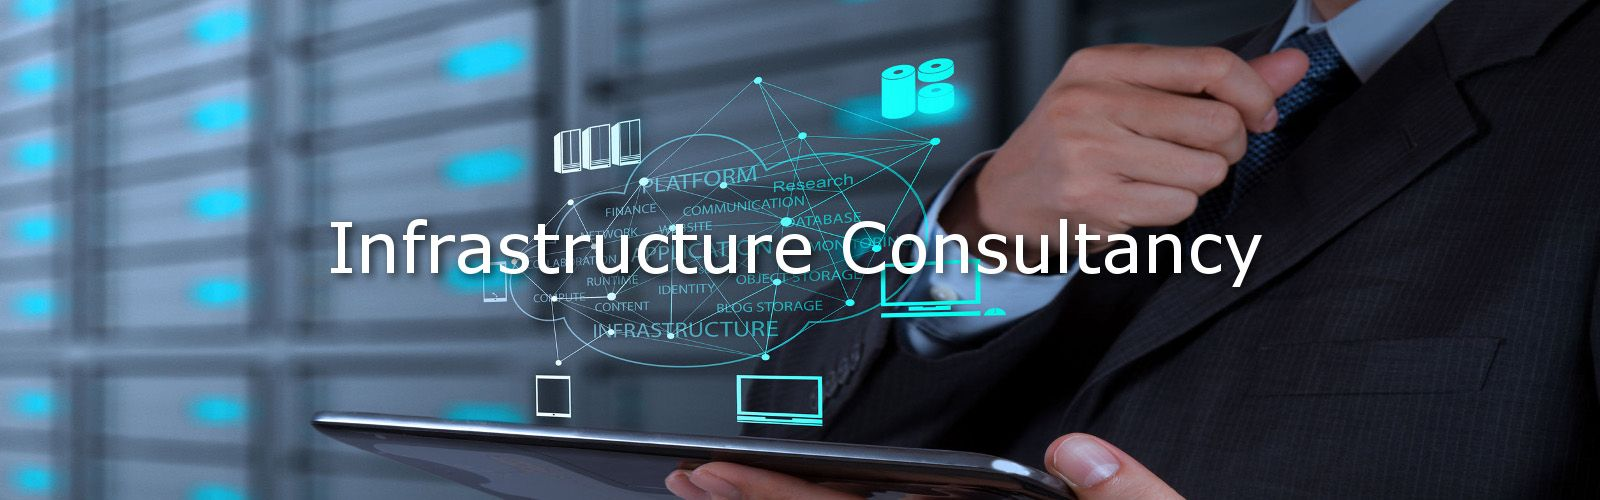 J2 Technology Infrastructure Consultancy